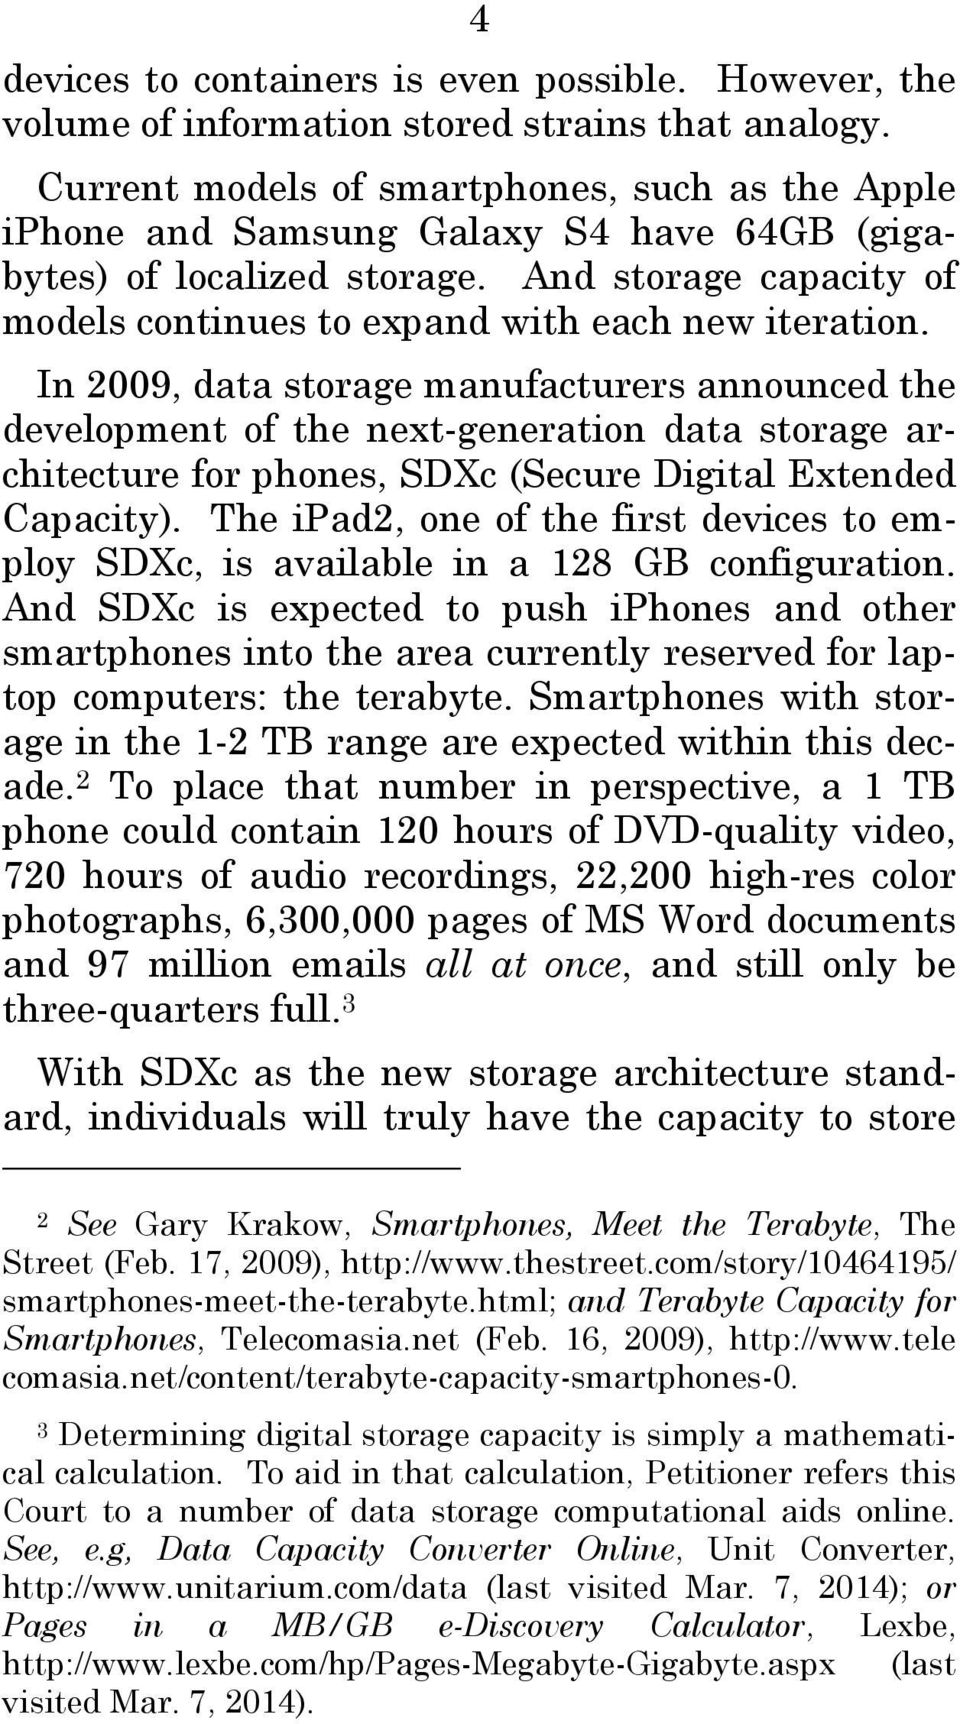 In 2009, data storage manufacturers announced the development of the next-generation data storage architecture for phones, SDXc (Secure Digital Extended Capacity).